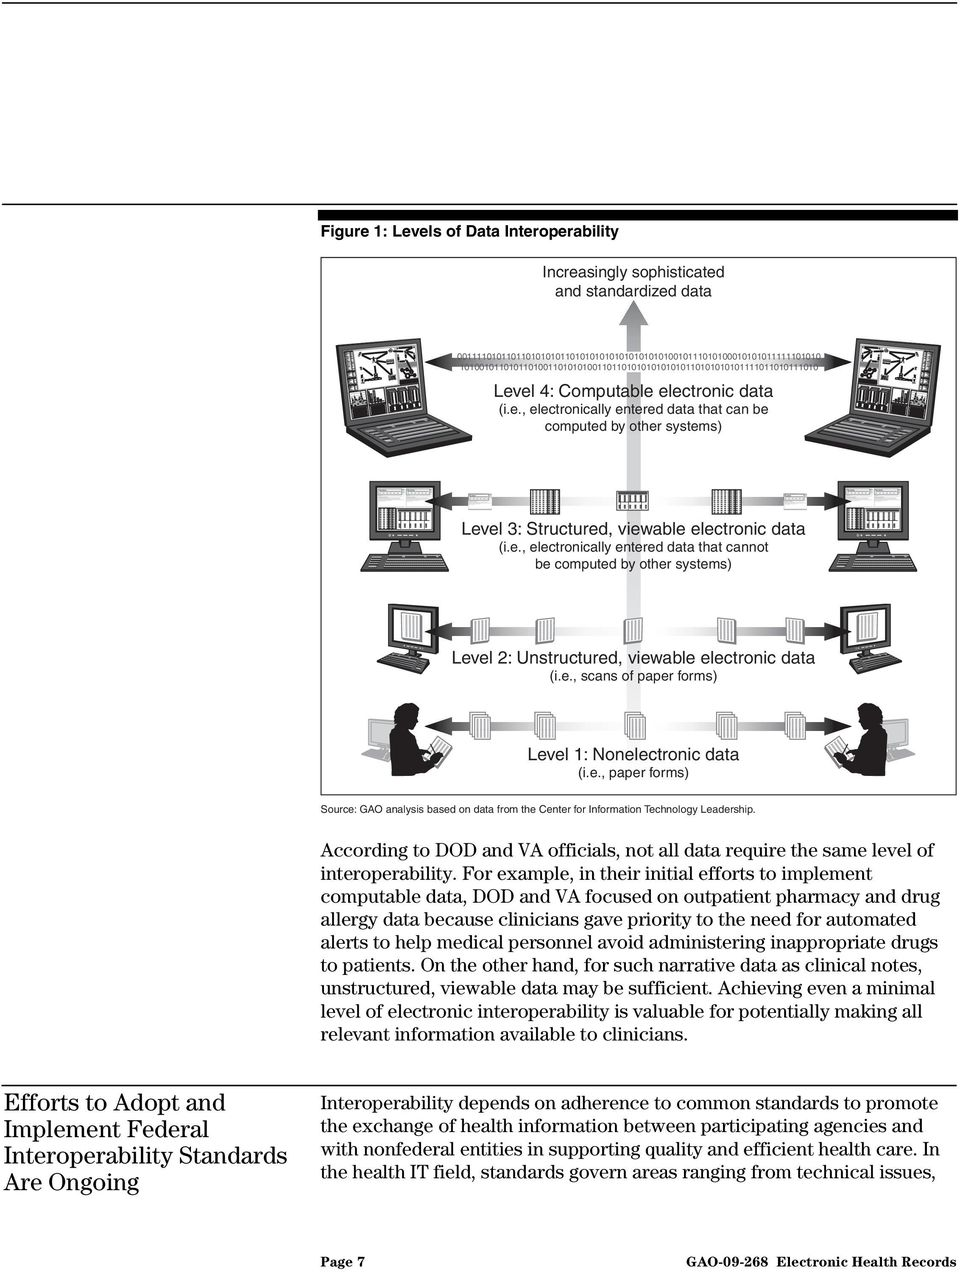 e., electronically entered data that cannot be computed by other systems) Level 2: Unstructured, viewable electronic data (i.e., scans of paper forms) Level 1: Nonelectronic data (i.e., paper forms) Source: GAO analysis based on data from the Center for Information Technology Leadership.